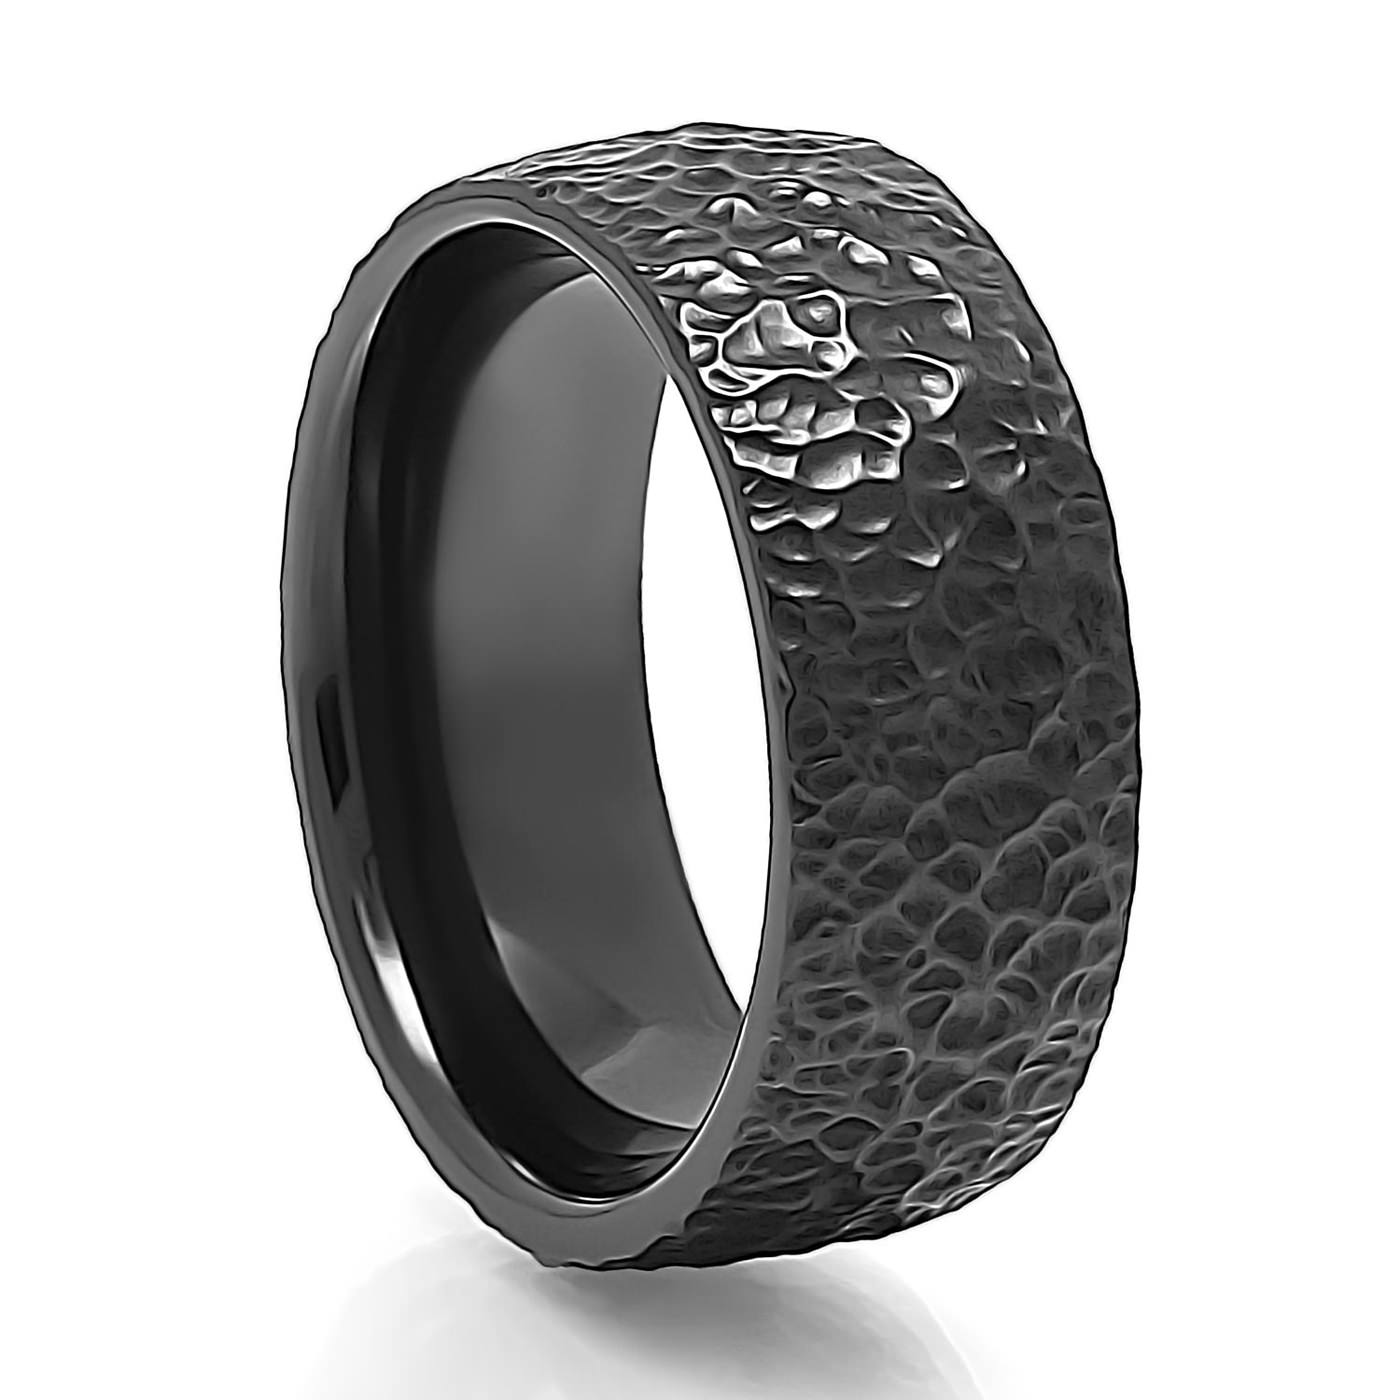 wedding black faceted in ring womens band mens rings and for available amazon jewelry men bands com to sizes ceramic dp edge